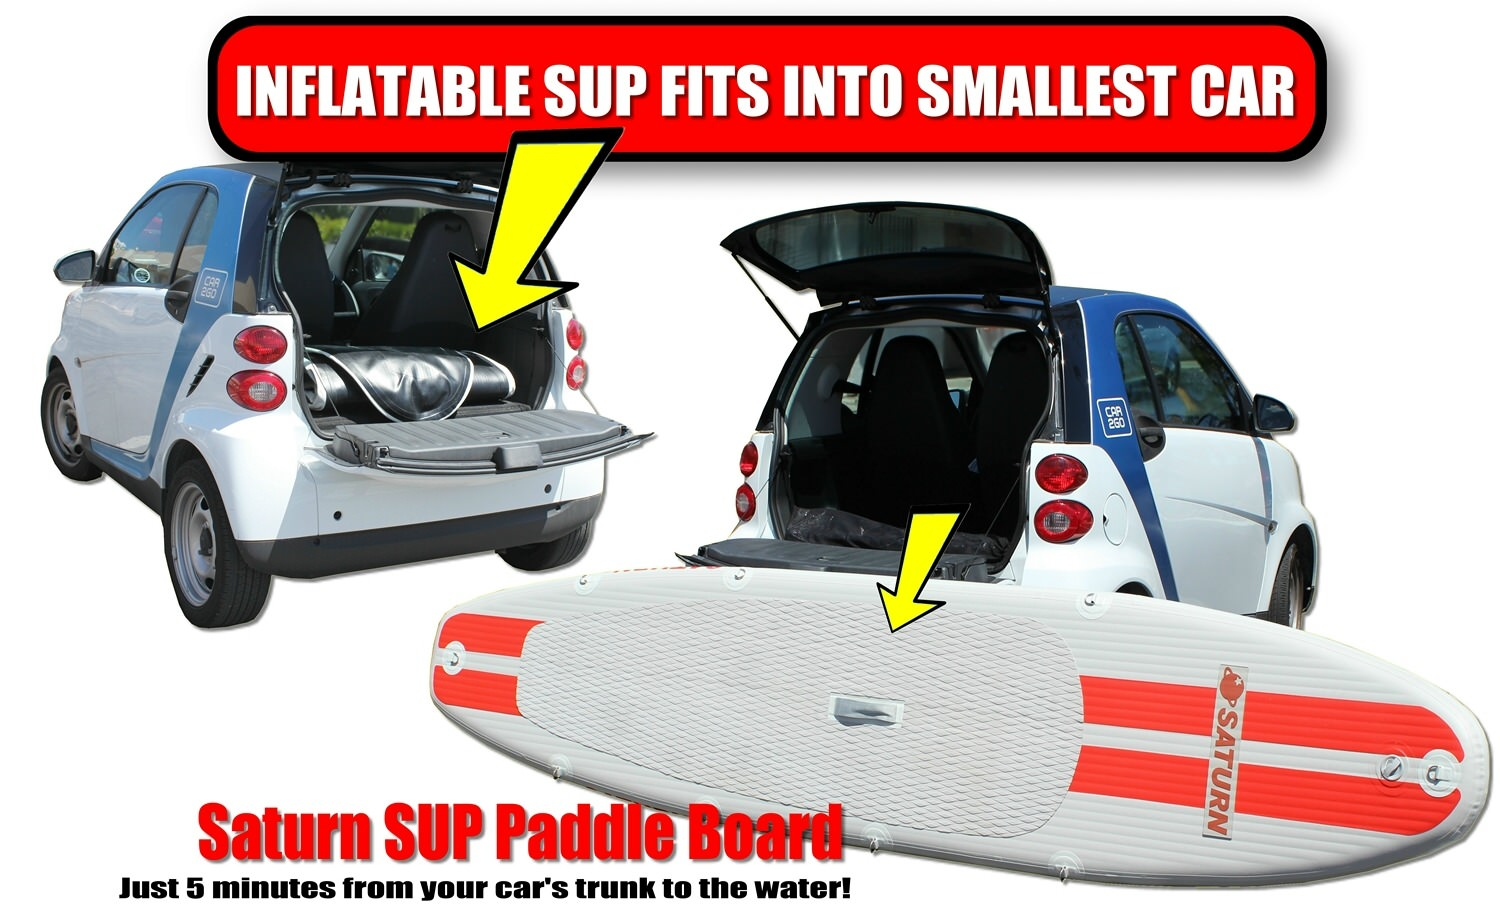 Inflatable Sup Fit Into Small